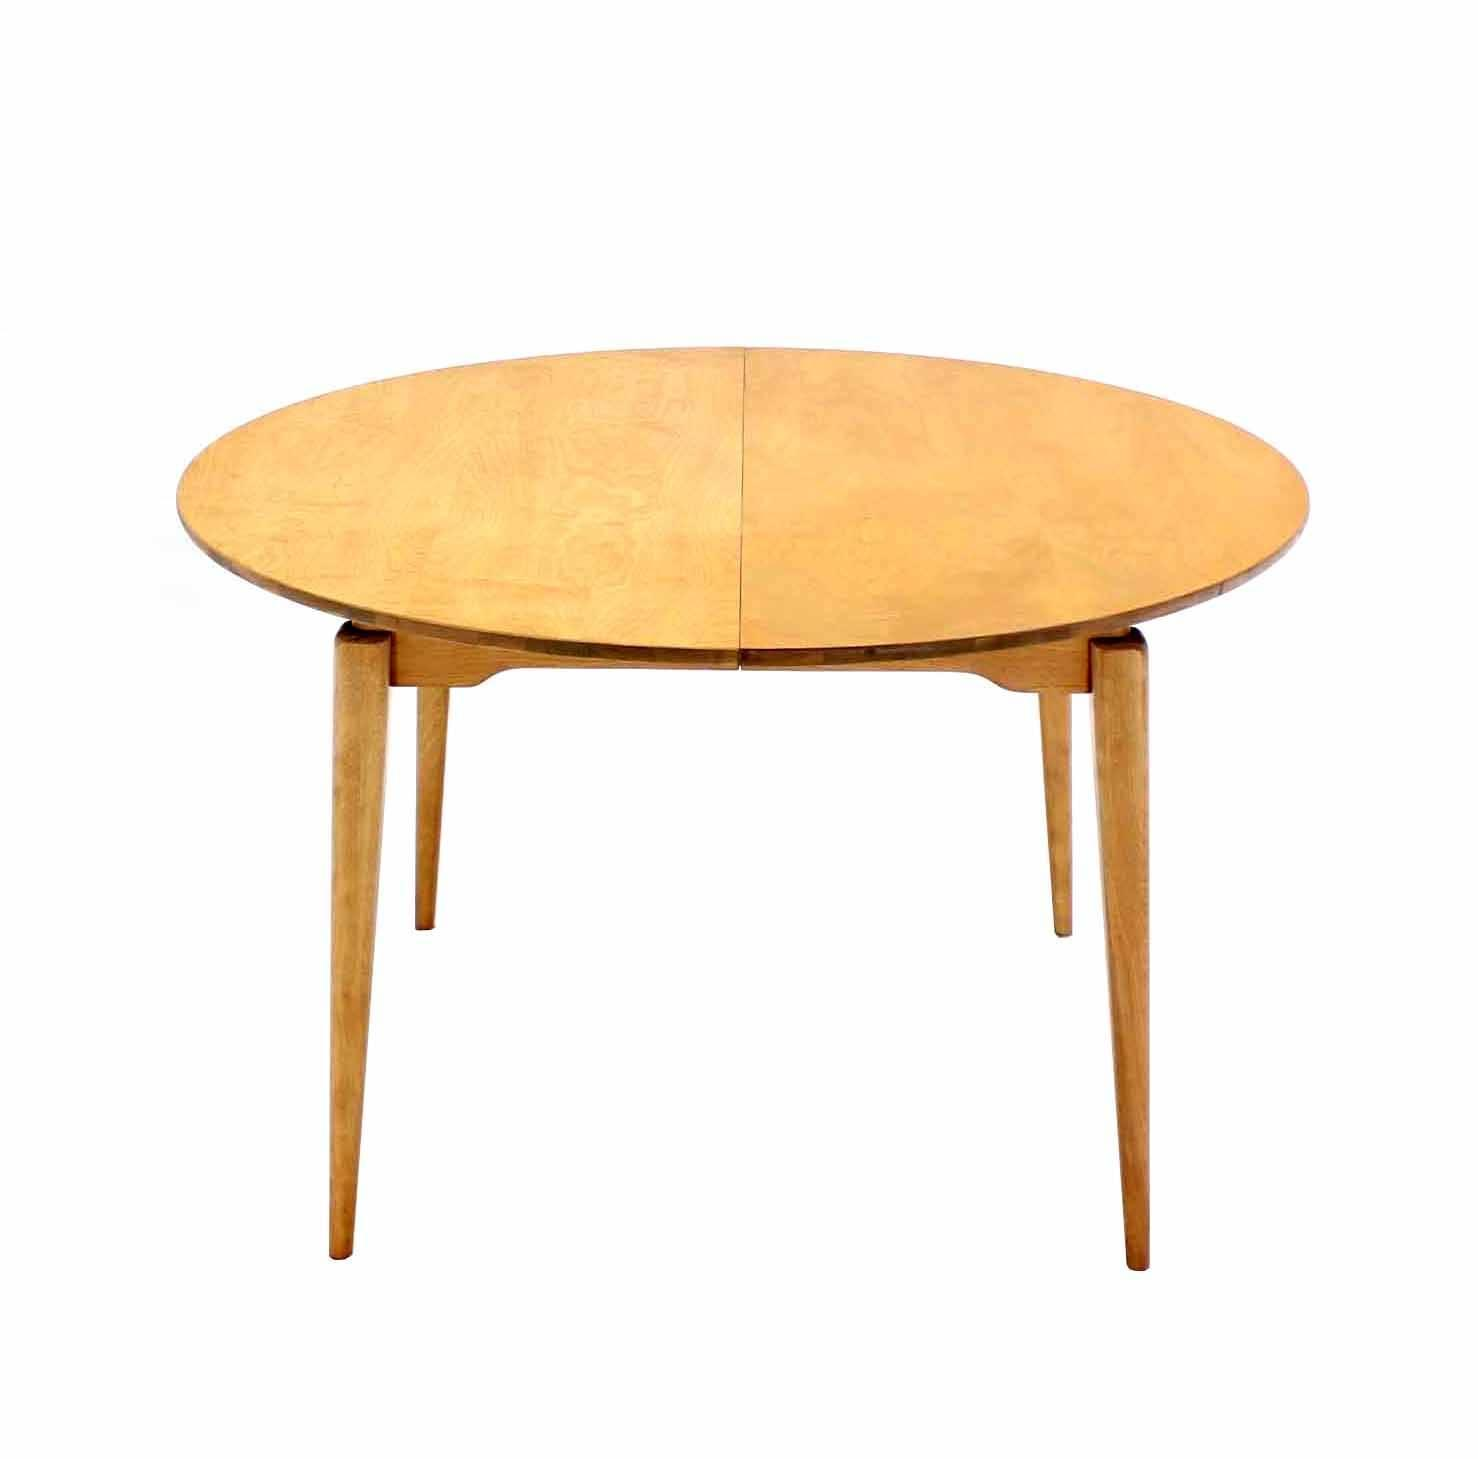 Round Dining Room Tables For Sale round mahogany svenska  : IMG9024z from itcertstore.com size 1478 x 1459 jpeg 30kB